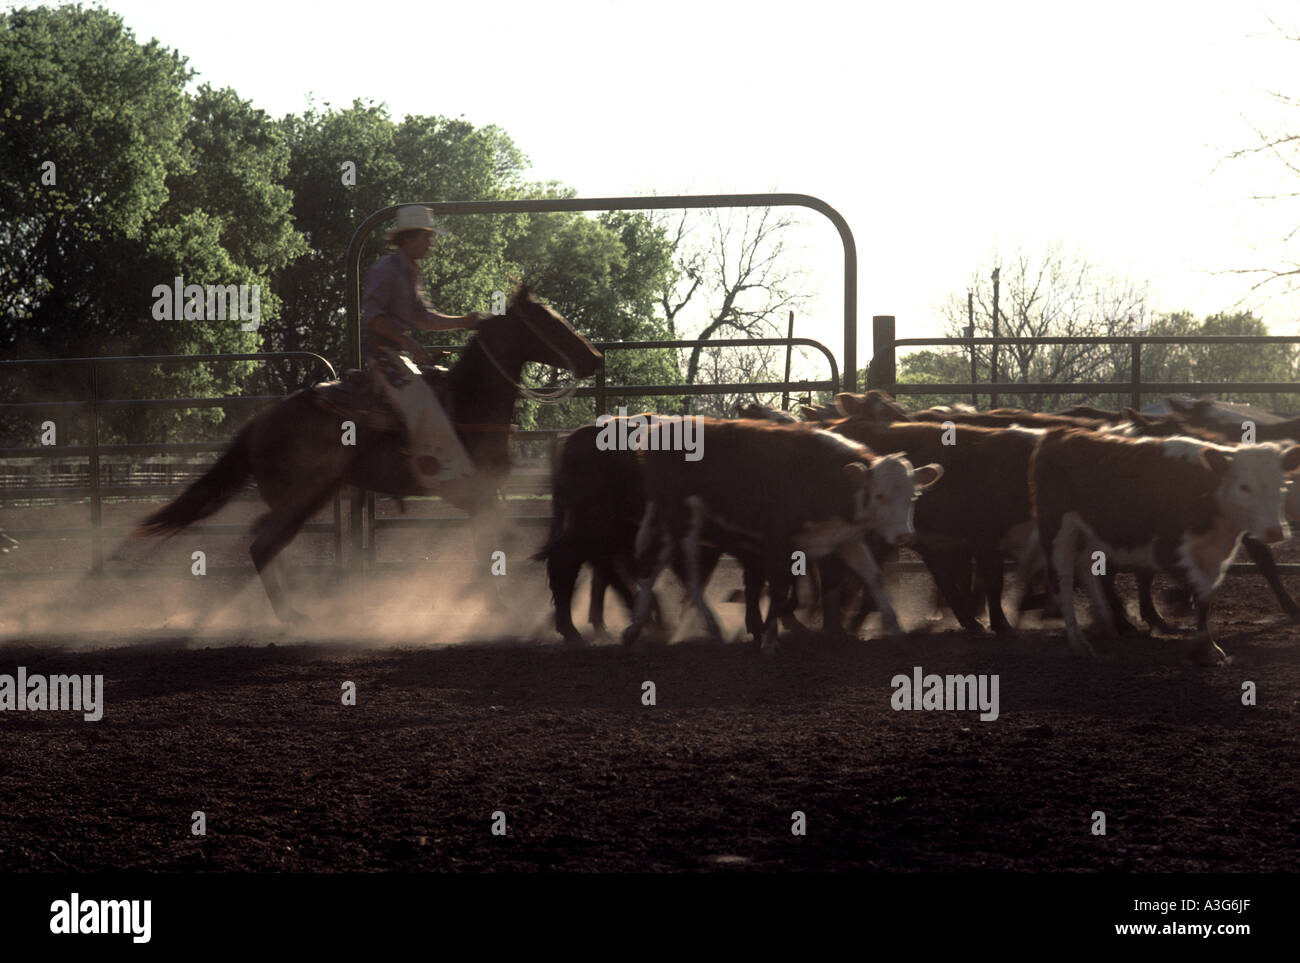 Texas cowhand on a sorrel cutting horse pens part of a herd of cattle in a dusty corral on a ranch. - Stock Image